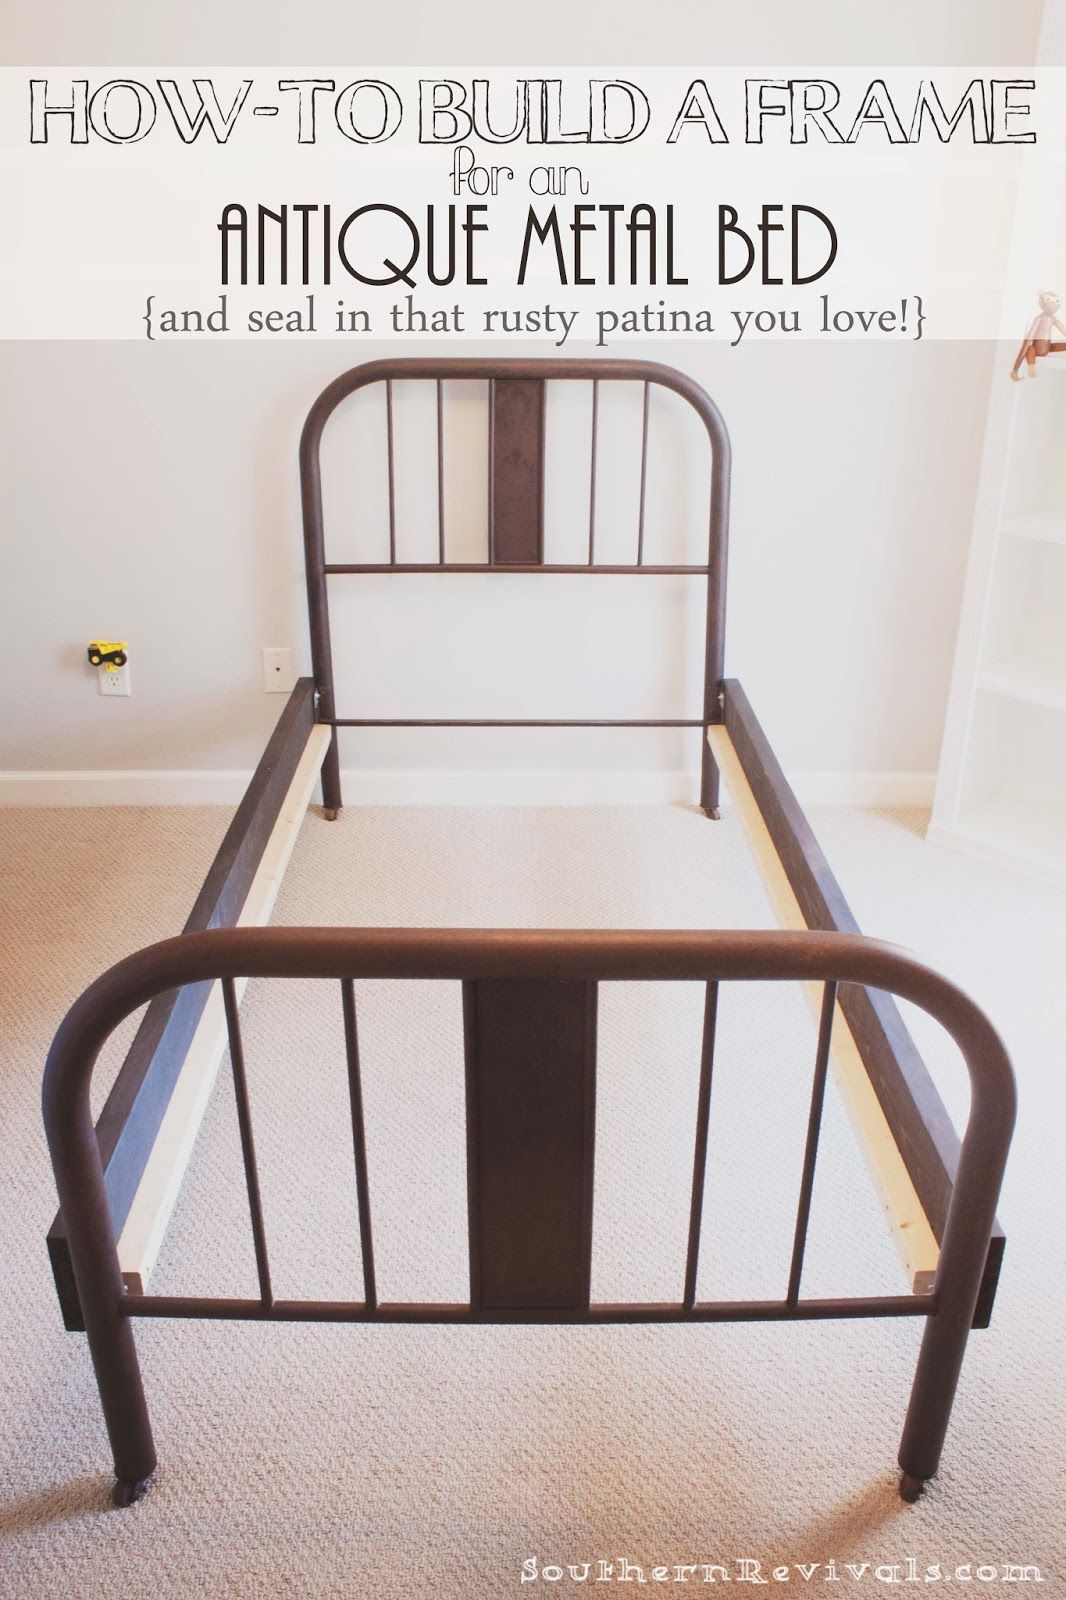 How To Make A Frame For An Antique Metal Bed Metal Bed Frame